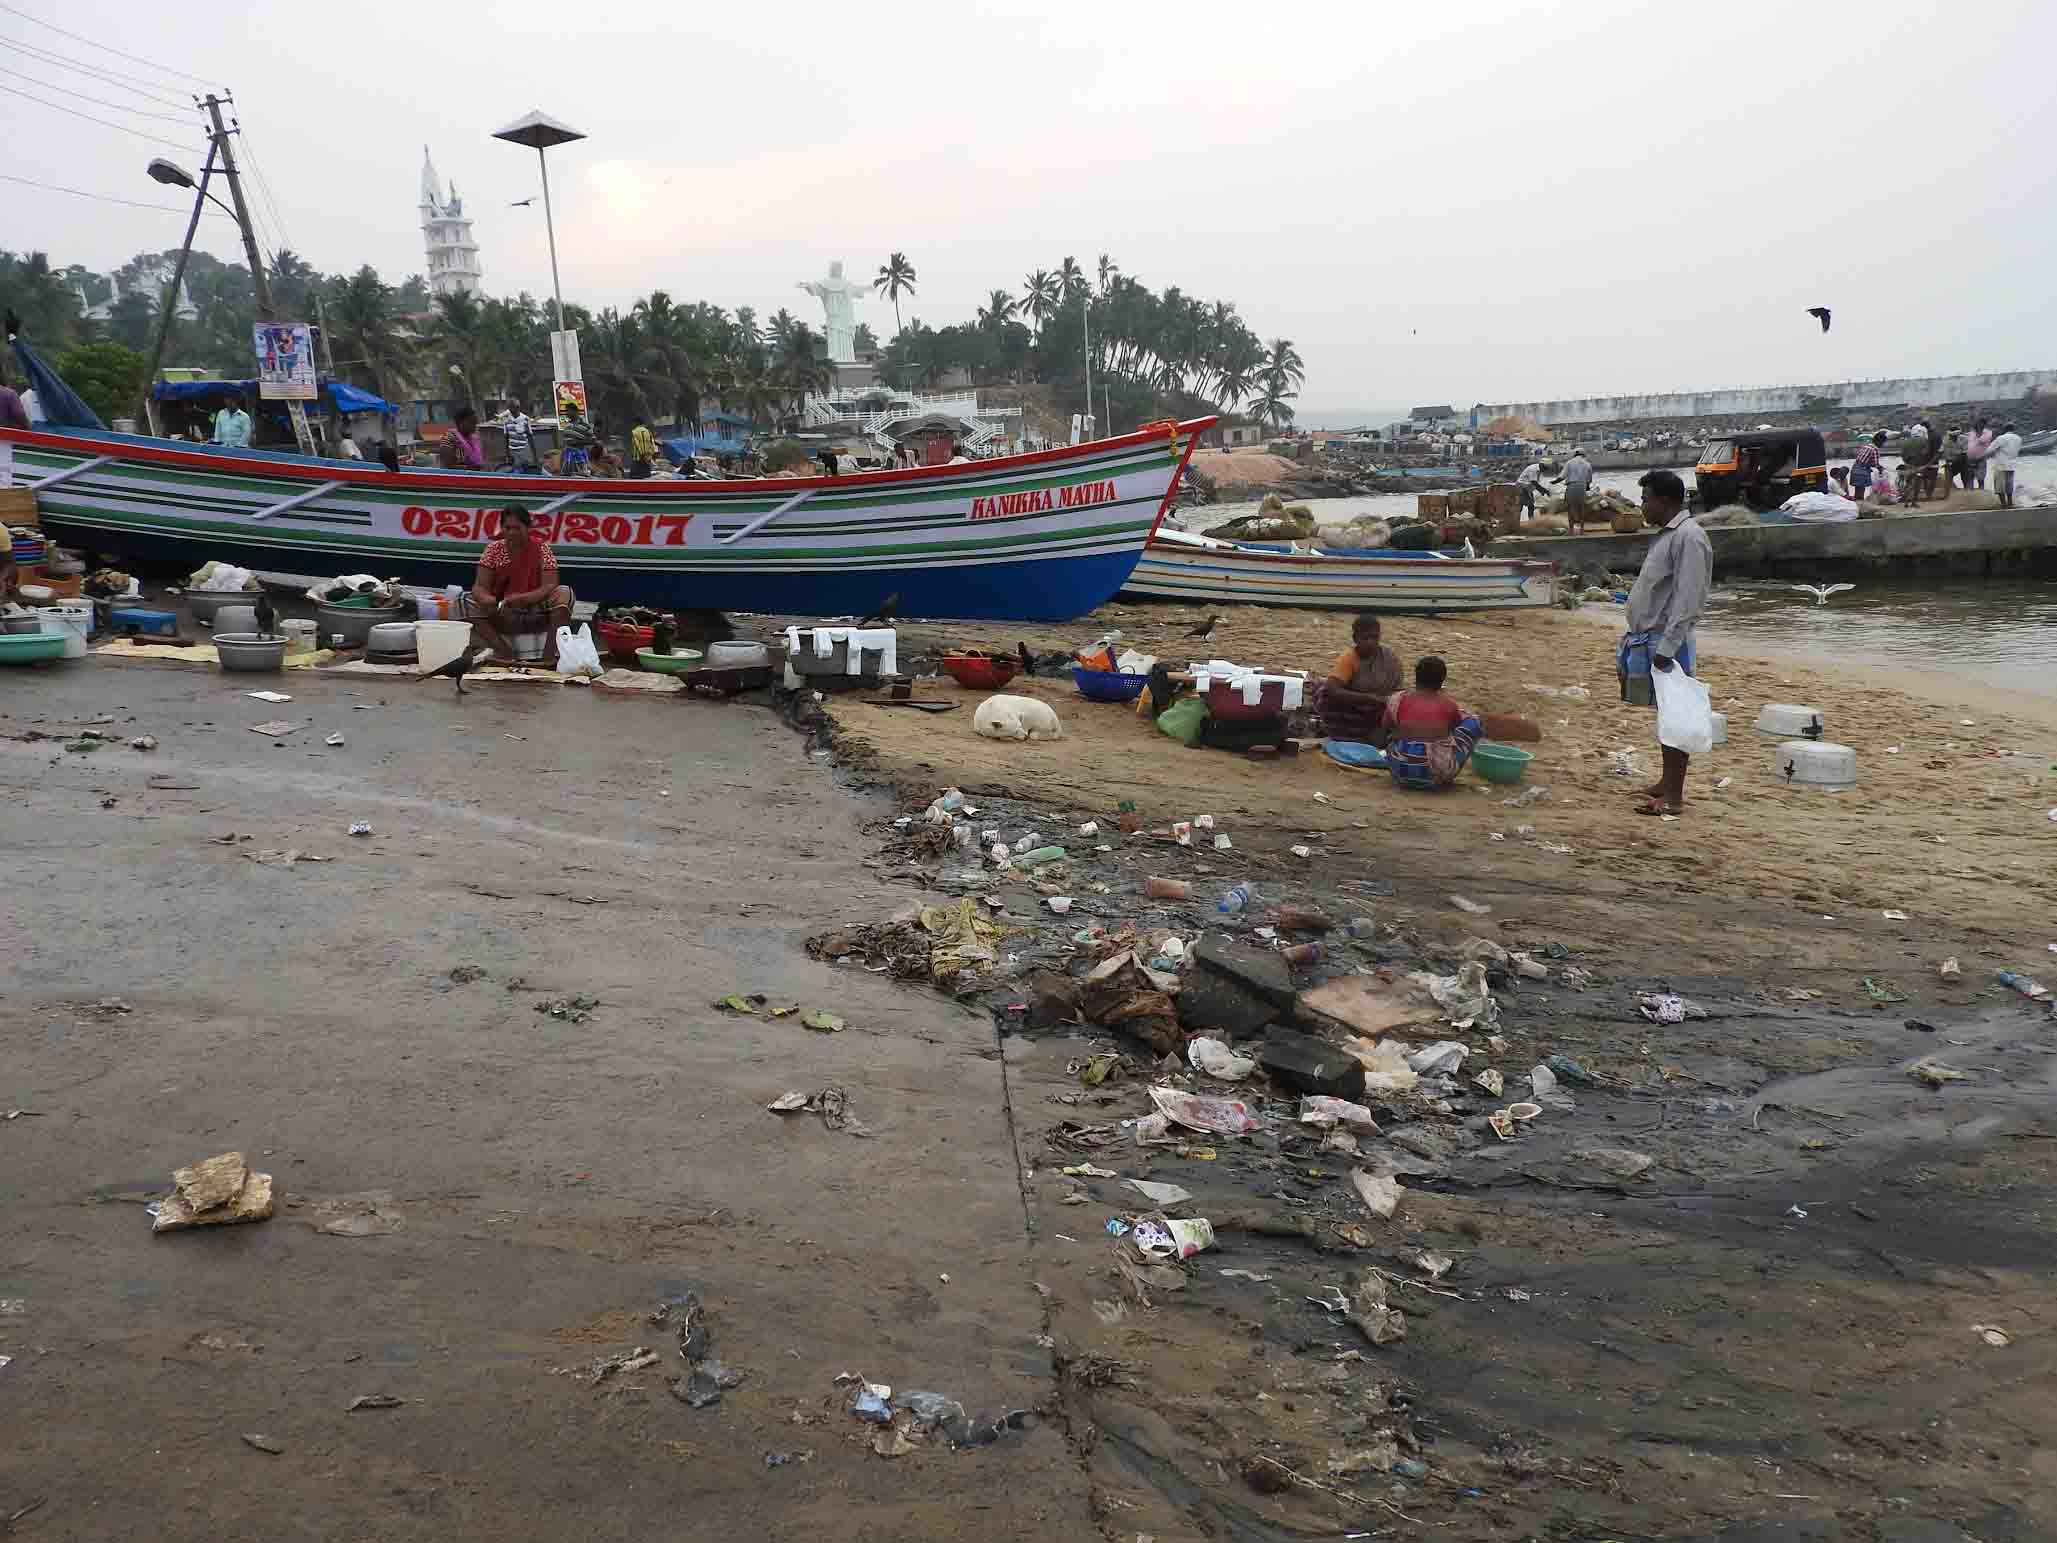 Vizhinjam Harbour is literally a rubbish dump with no adequate waste facilities and a lack of awareness causing enormous marine health issues.